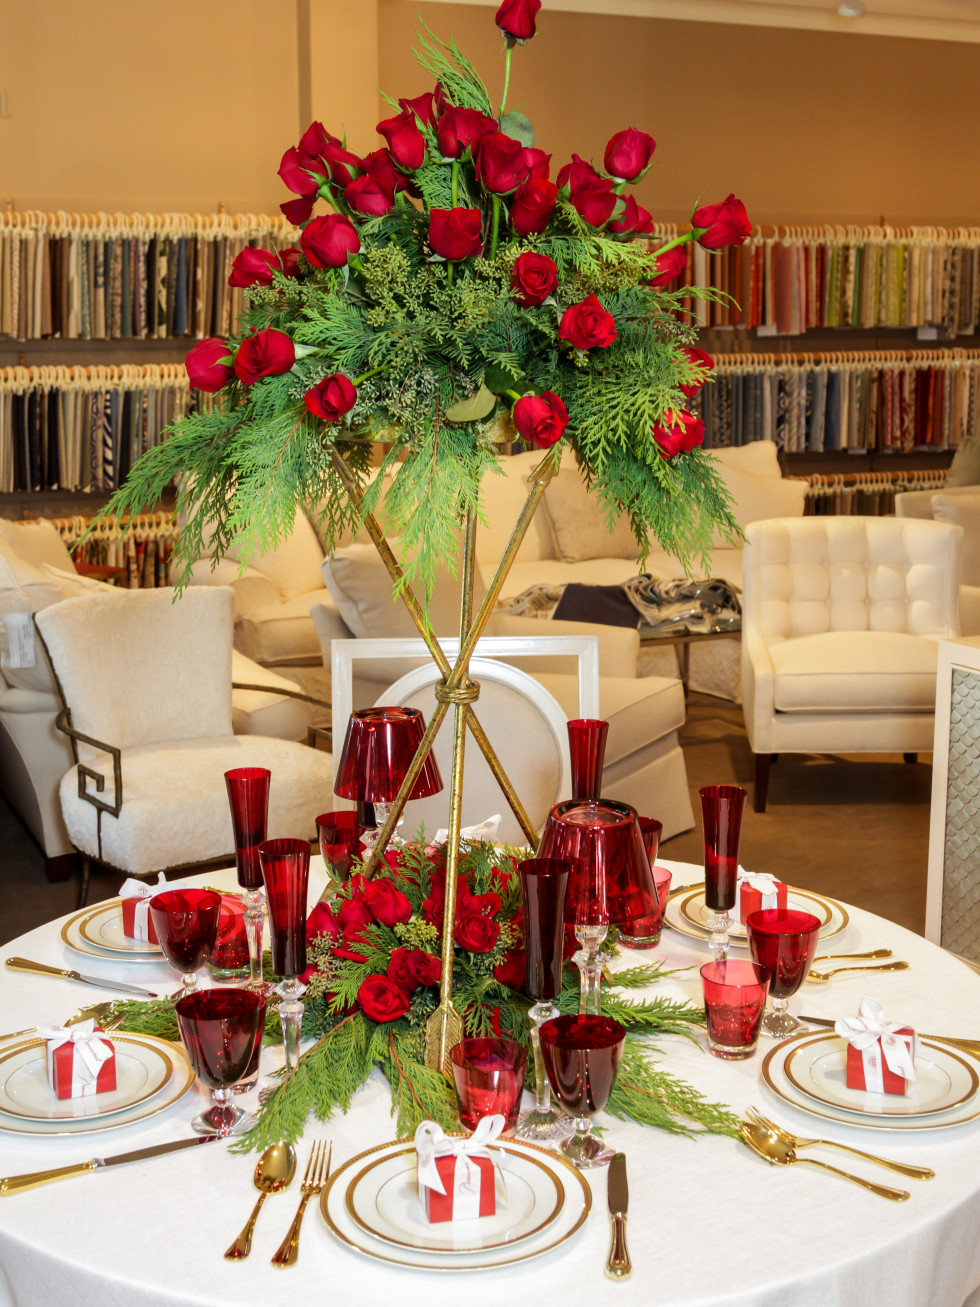 News, Houston Design Center, Deck the Tables, Dec. 2015 Charles Ray & Associates